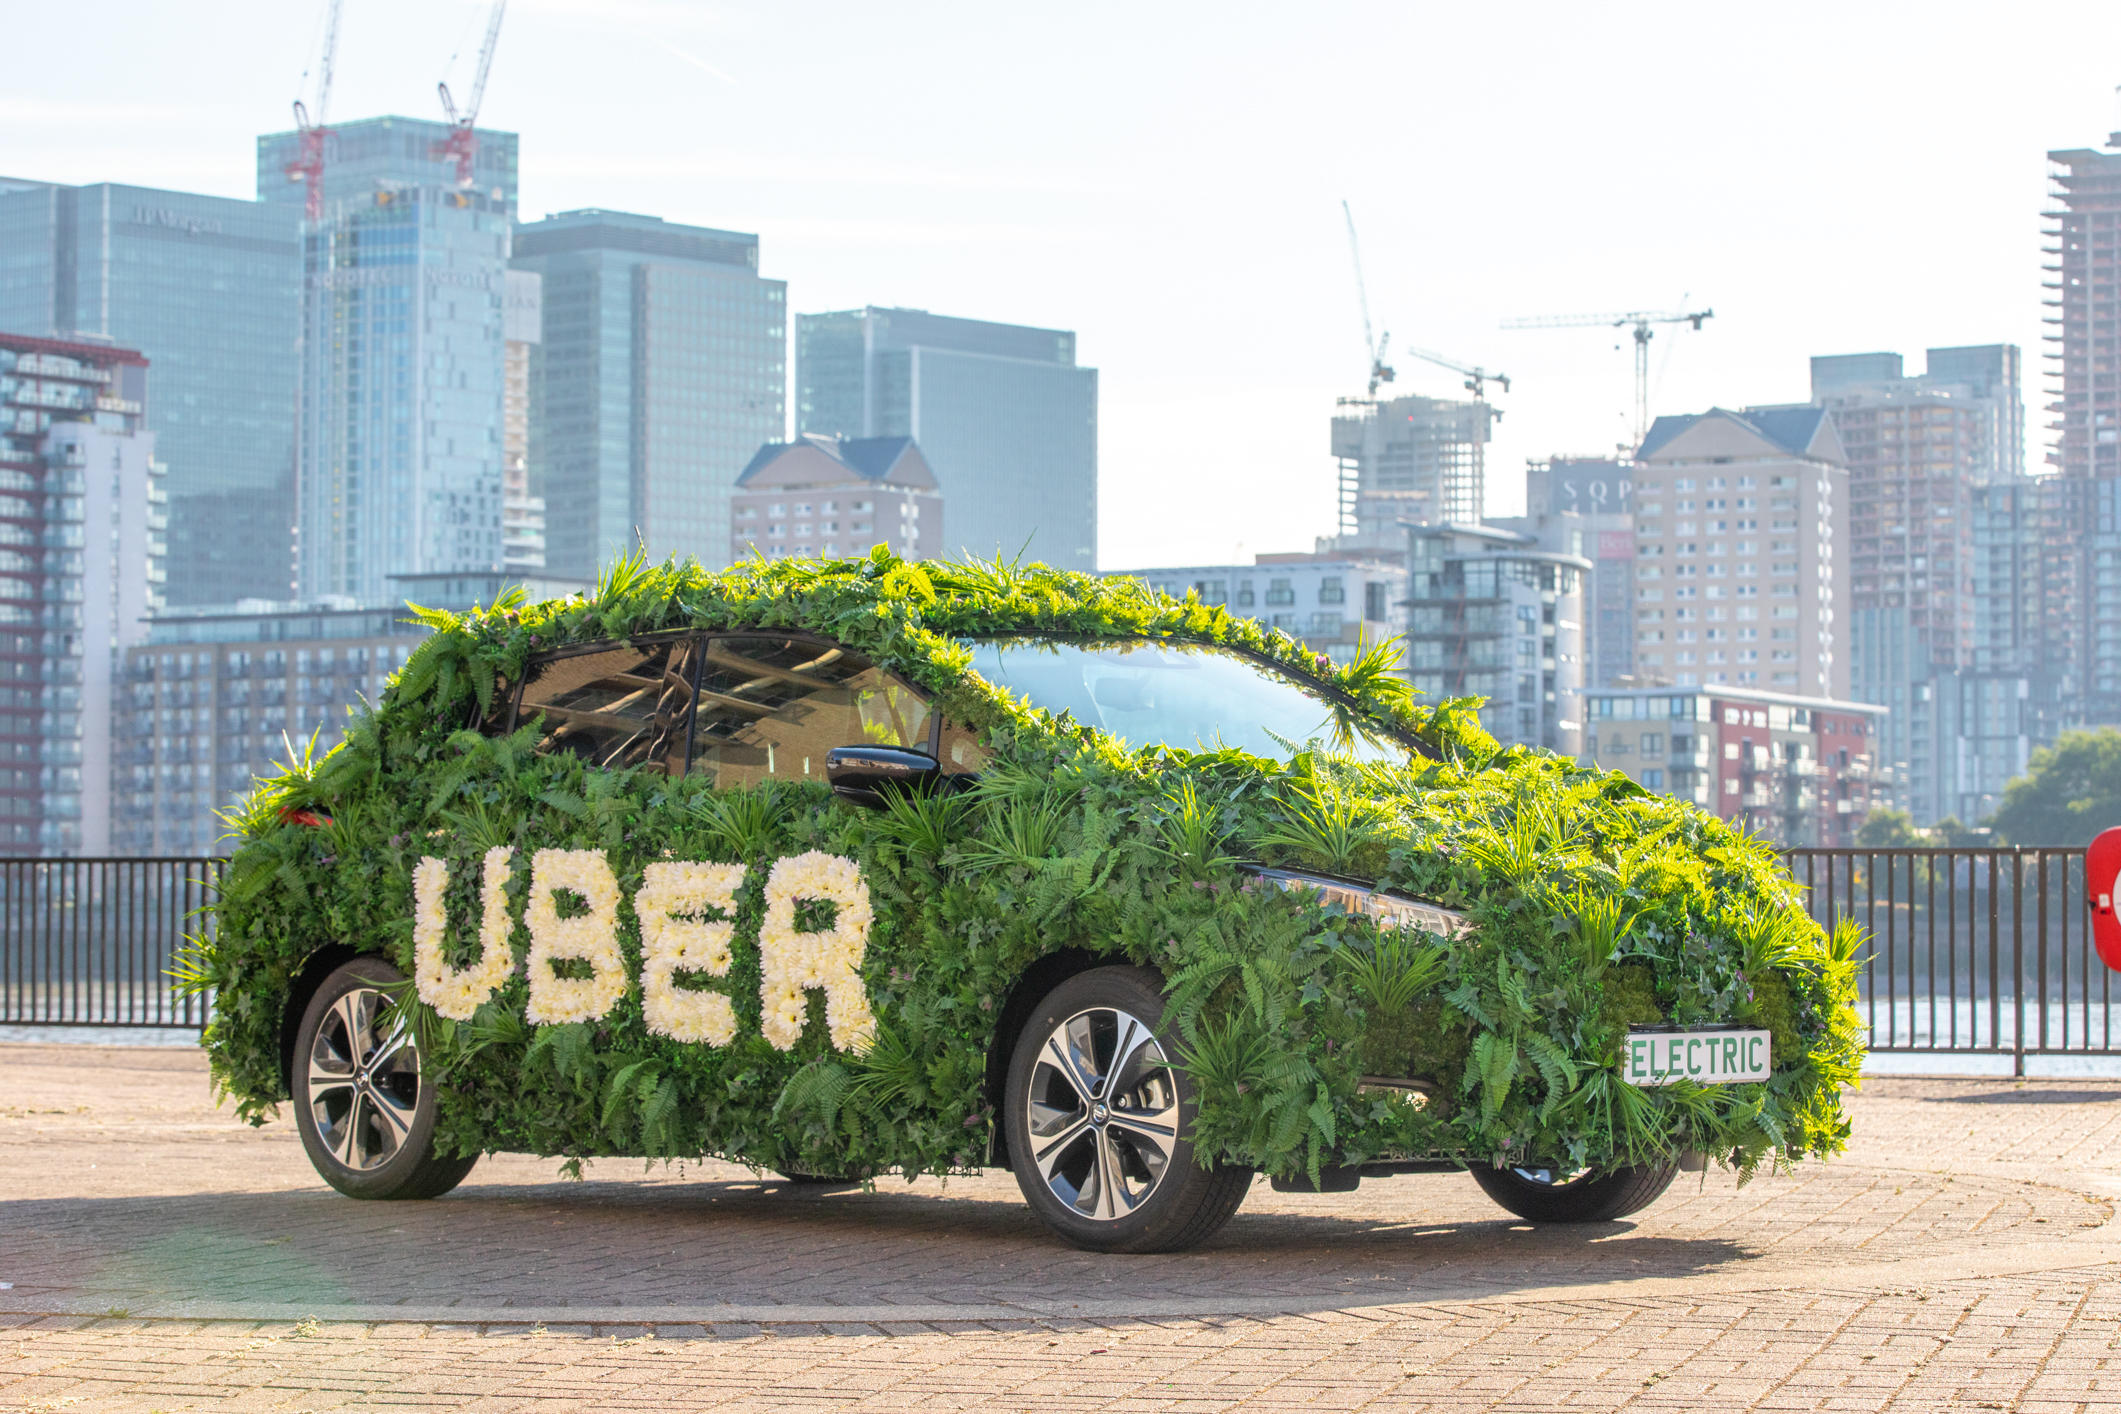 uber-clean-air-plan-2018-1-cuber-cpg-photography